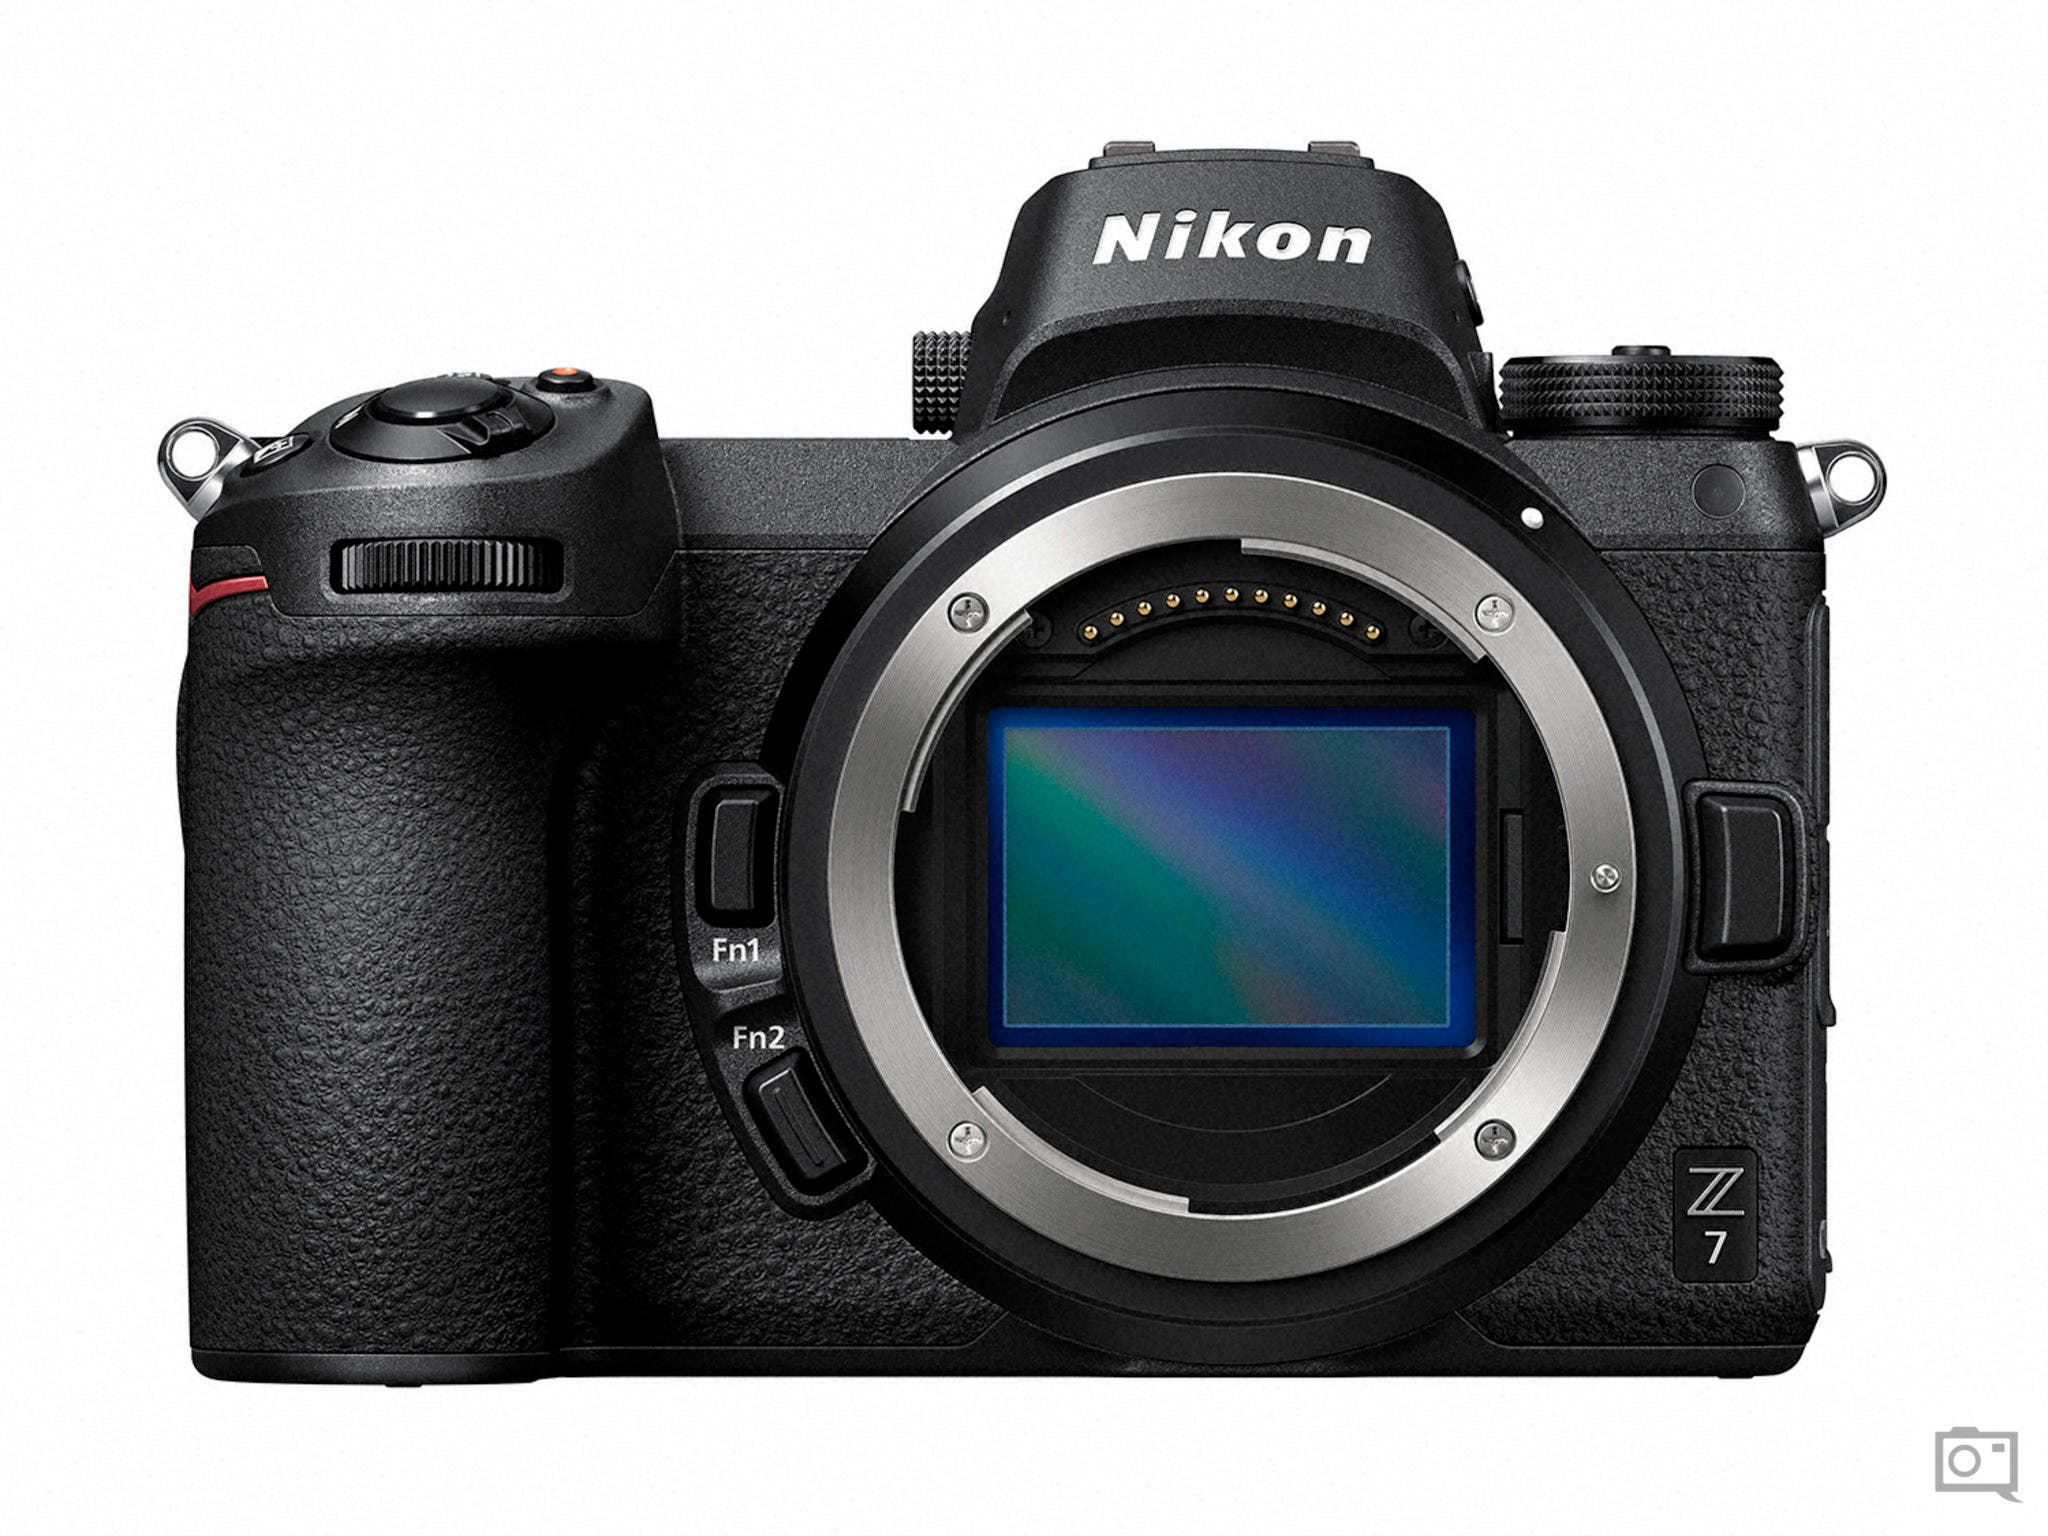 What Do the Nikon Z6 and Nikon Z7 Do That the Sony a7 III and the Sony a7r III Cannot?